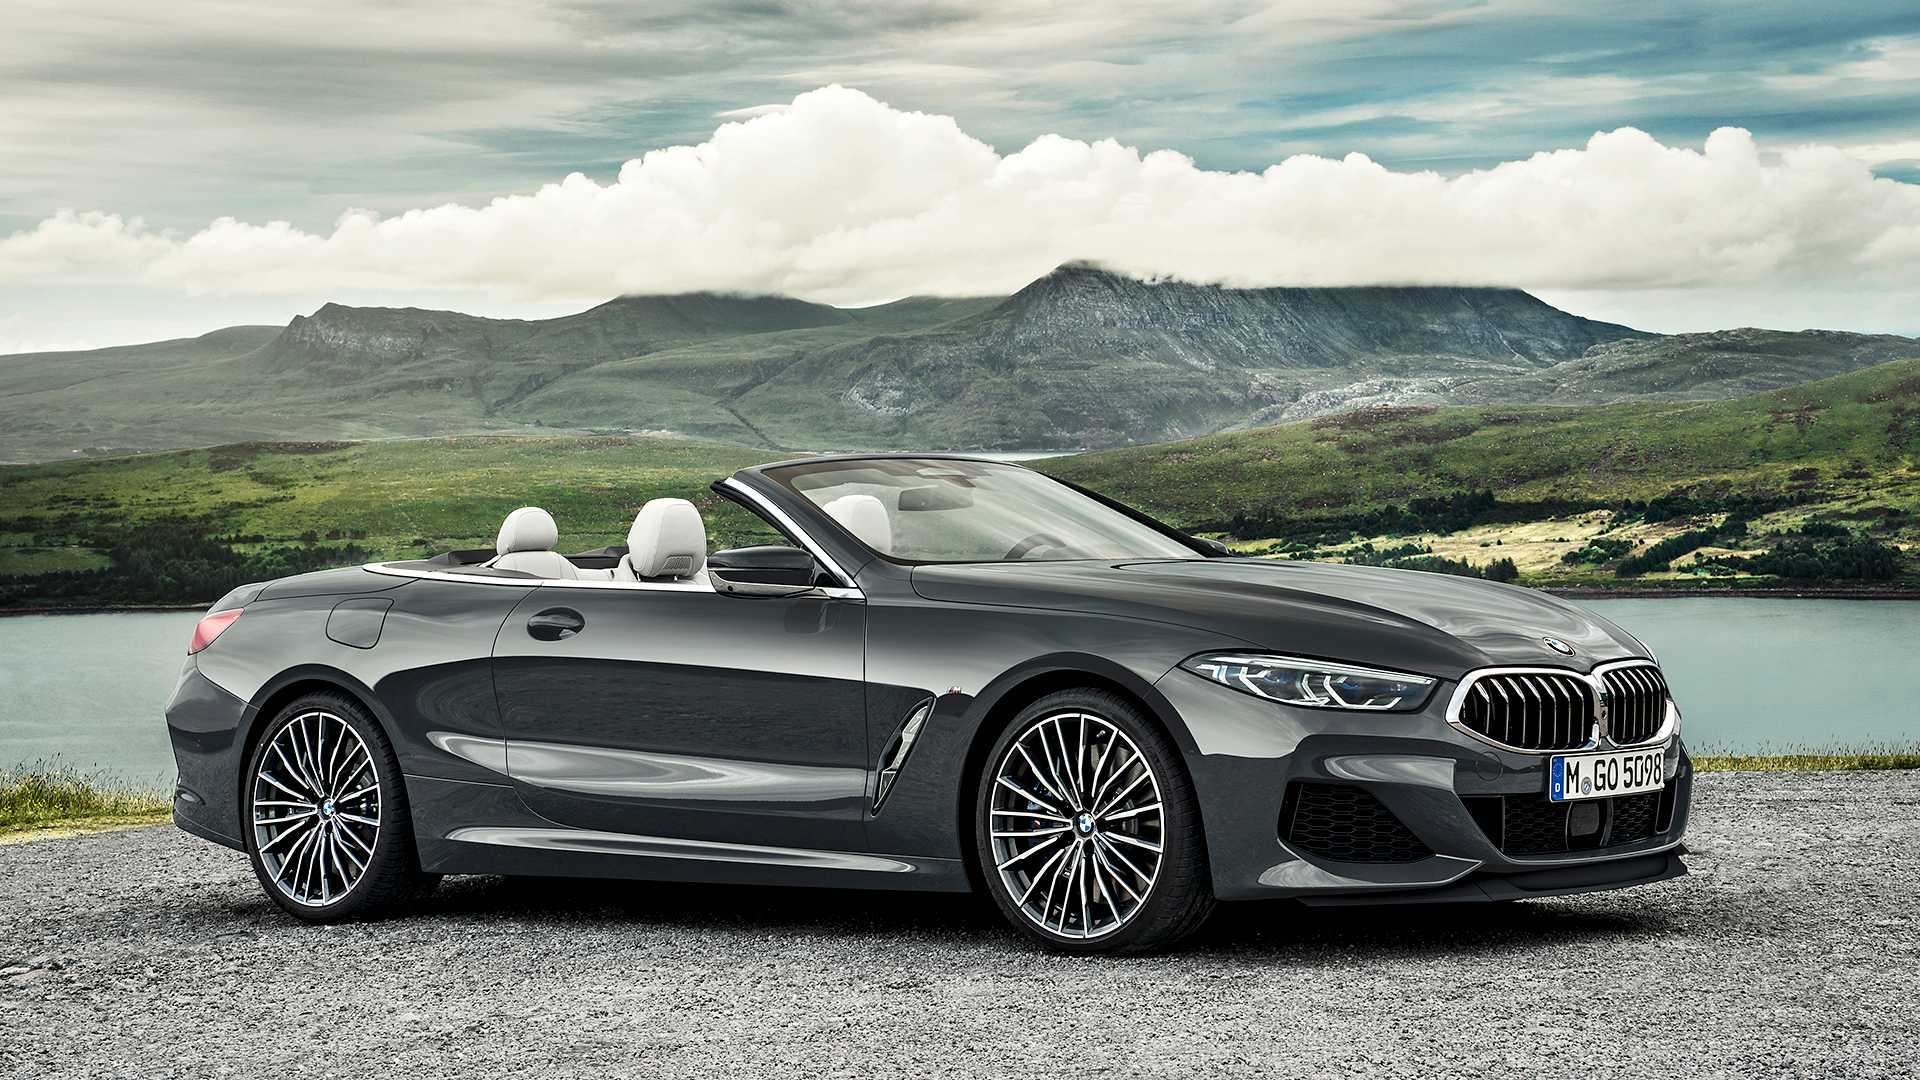 57 Concept of Bmw Hardtop Convertible 2019 Exterior Redesign and Concept by Bmw Hardtop Convertible 2019 Exterior